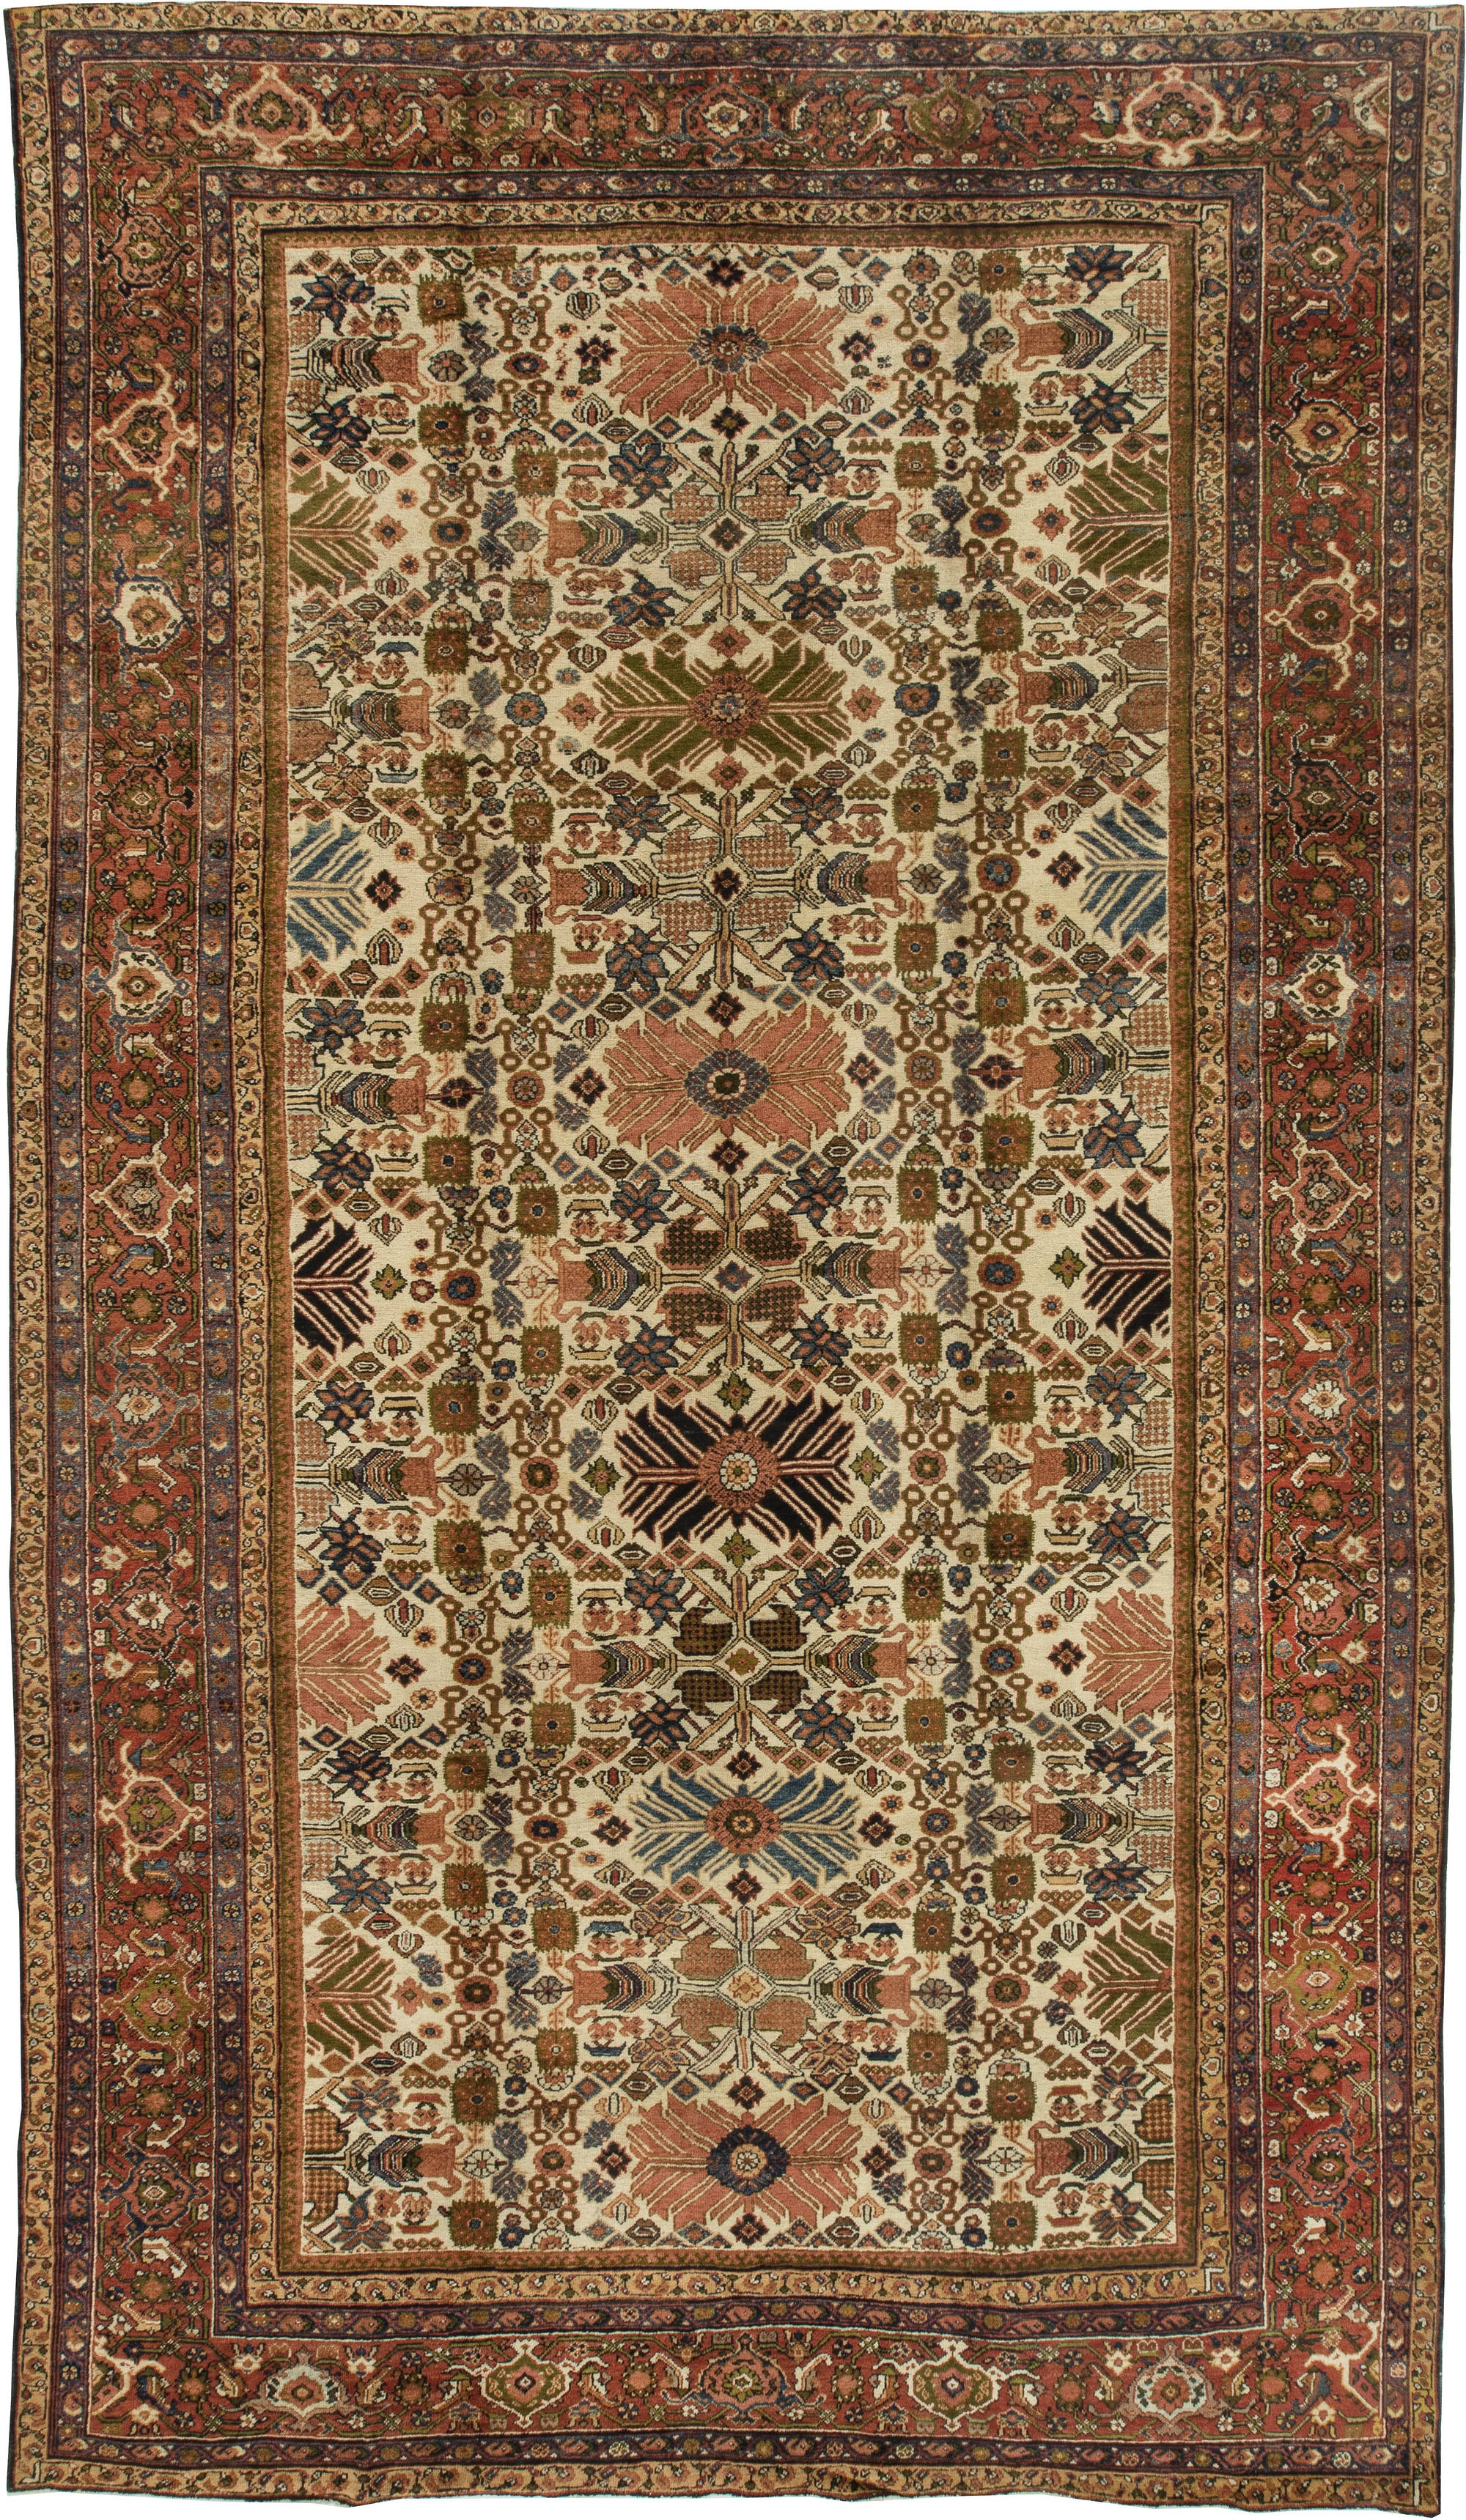 Antique Persian Rugs And Antique Oriental Rugs For Carpet Rugs (View 15 of 15)